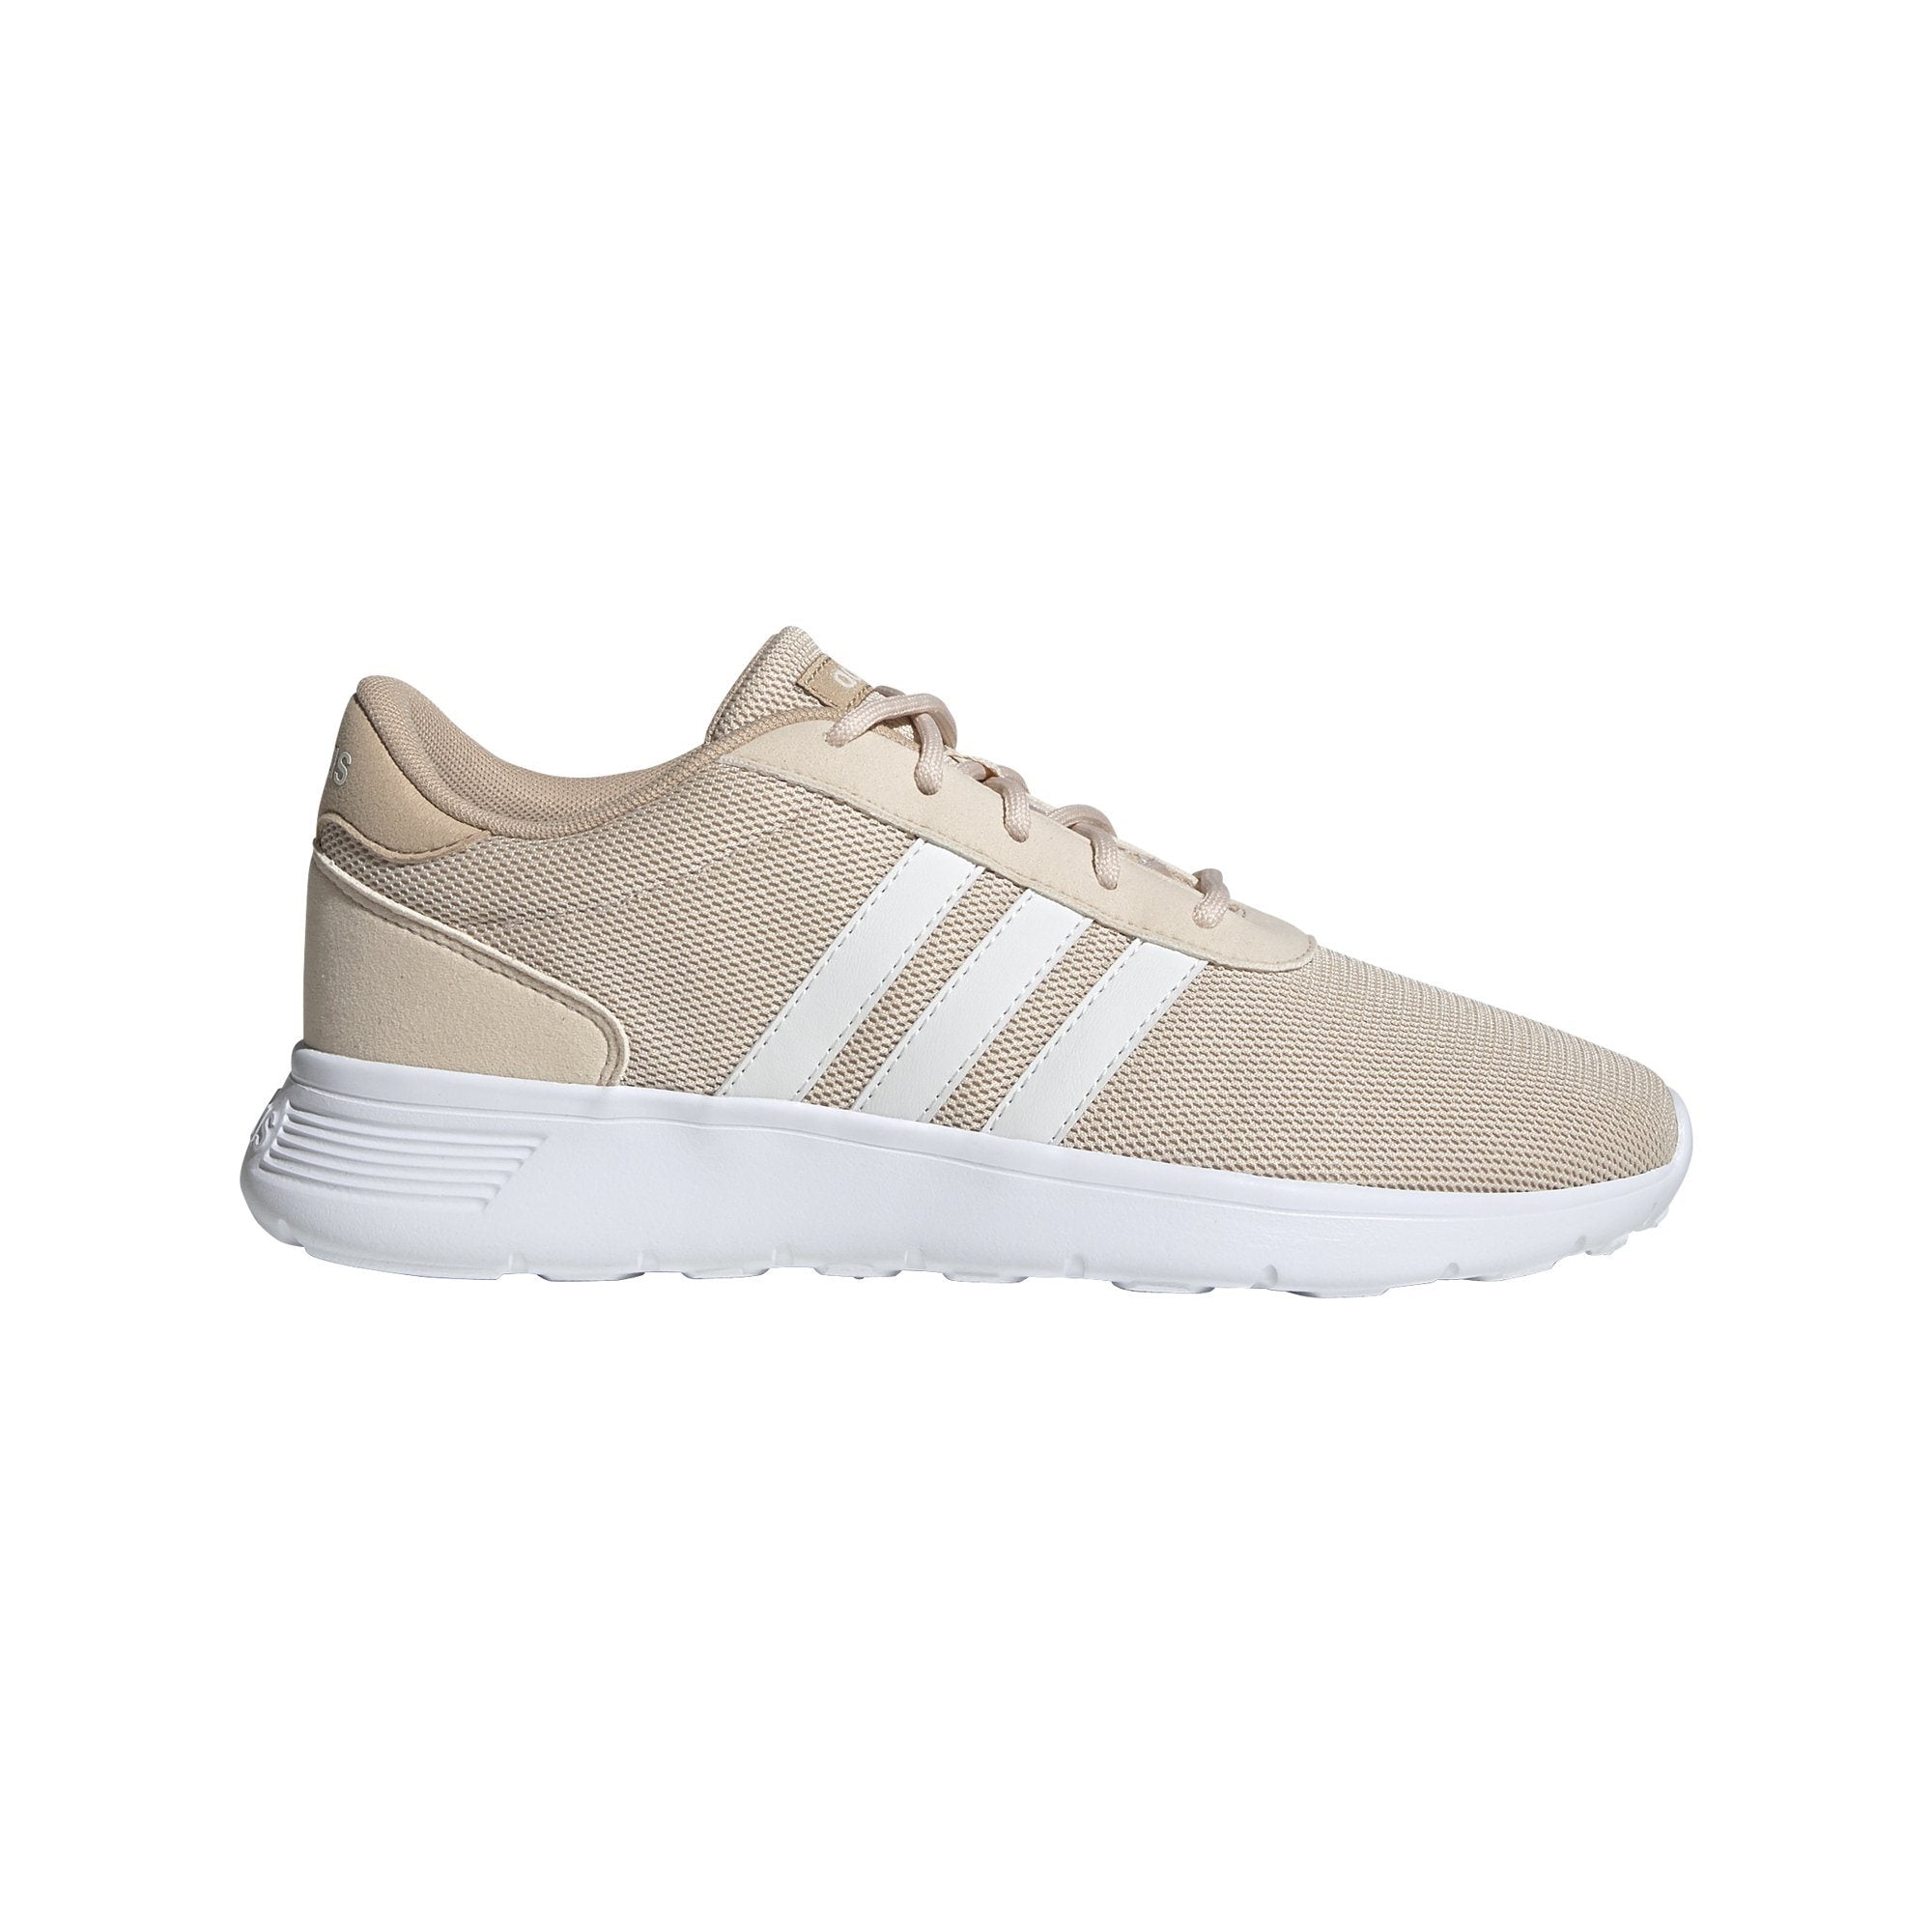 Adidas Womens Lite Racer - Linen/Cloud White/St Pale Nude SP-Footwear-Womens Adidas